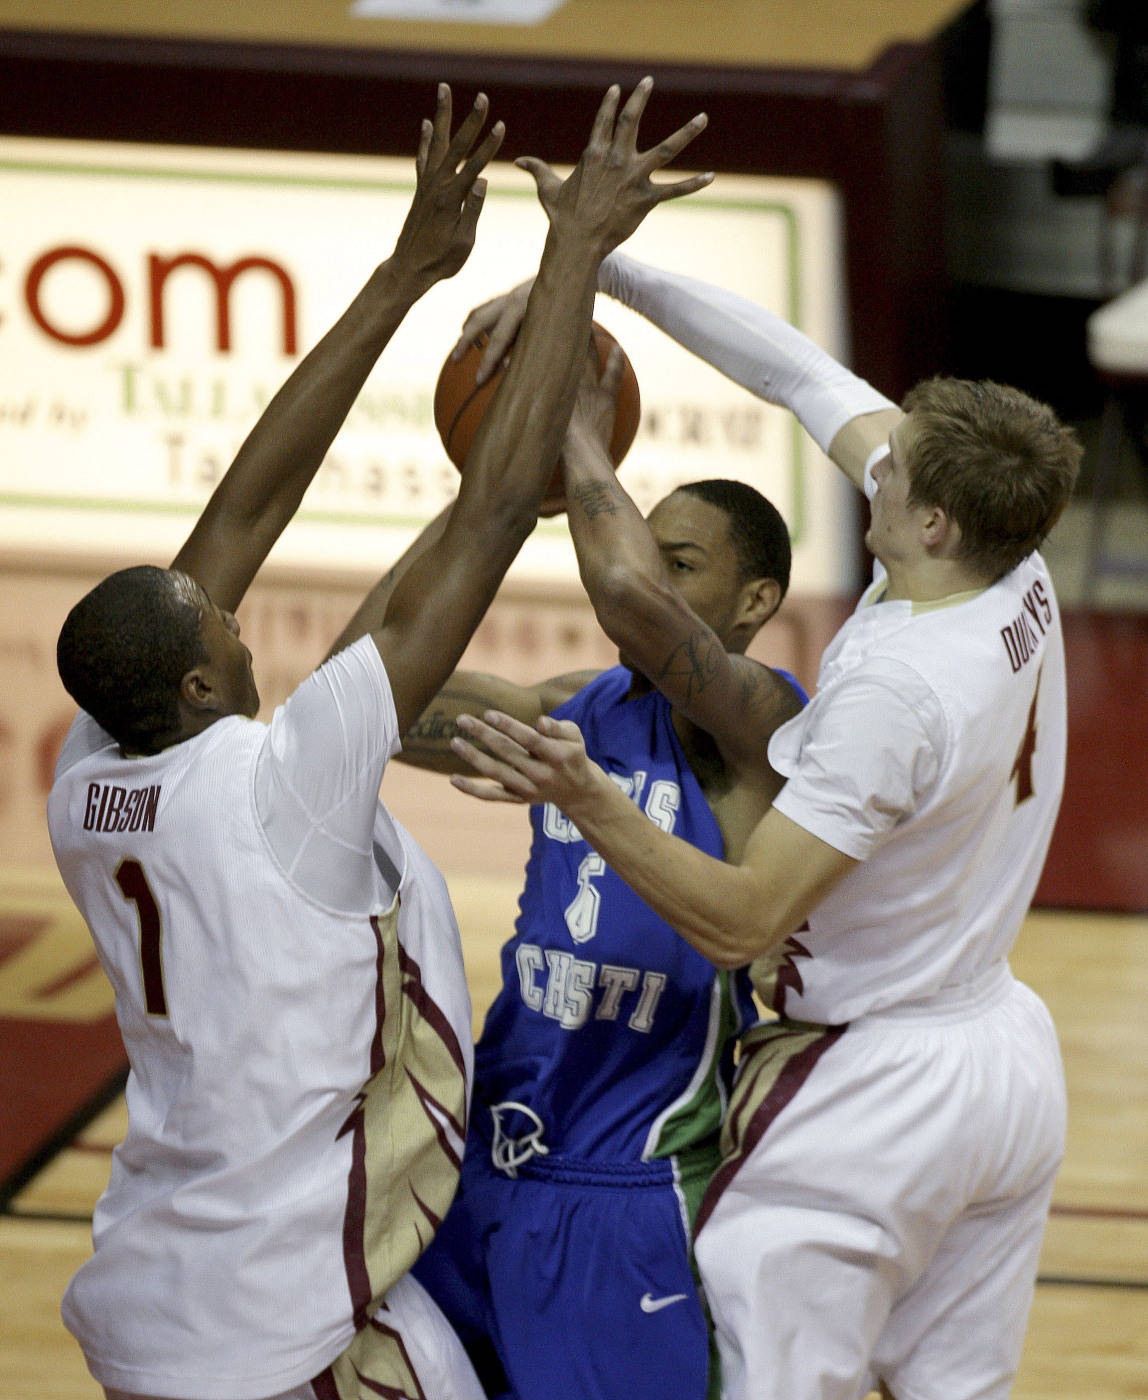 Texas A&M-Corpus Christi's Kevin Palmer, center, has his first-half shot blocked by Florida State's Deividas Dulkys, right, as Pierre Jordan, left, helps on defense during an NCAA college basketball game Monday, Jan. 4, 2010, in Tallahassee, Fla. (AP Photo/Phil Coale)